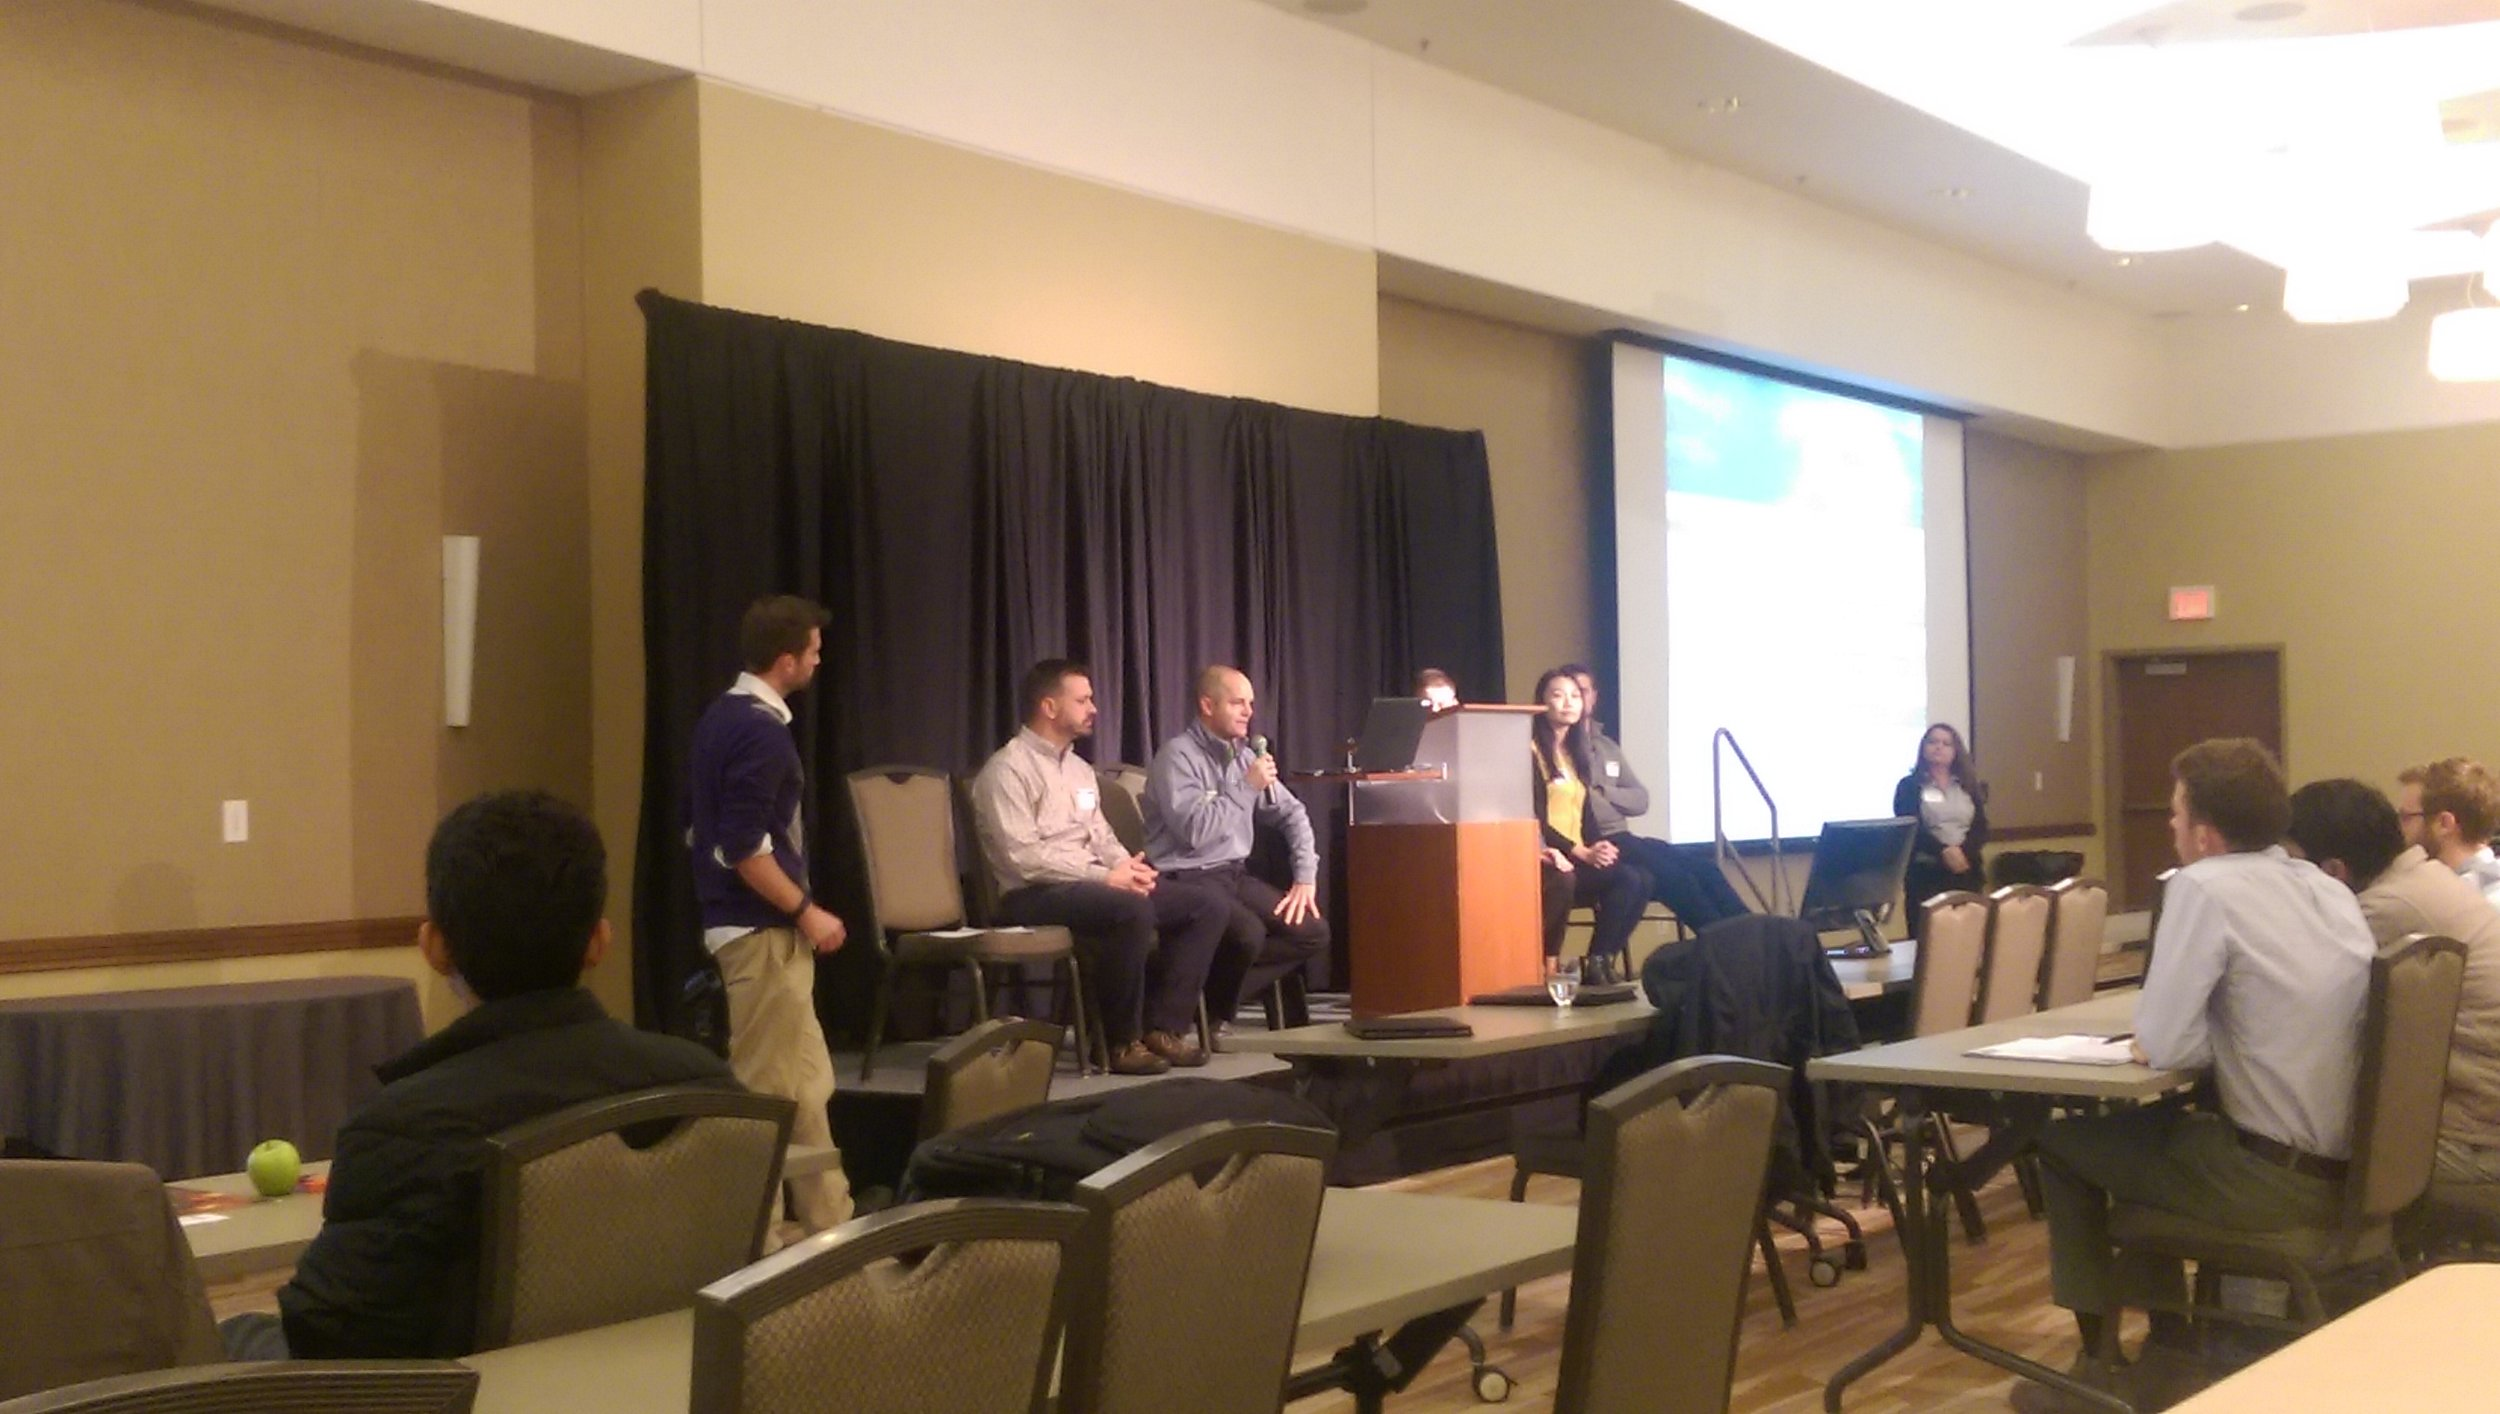 Cloudpoint President,Jonathan Hodel, answering questions during the Career Connection panel discussion at the University of Illinois GIS Day event.